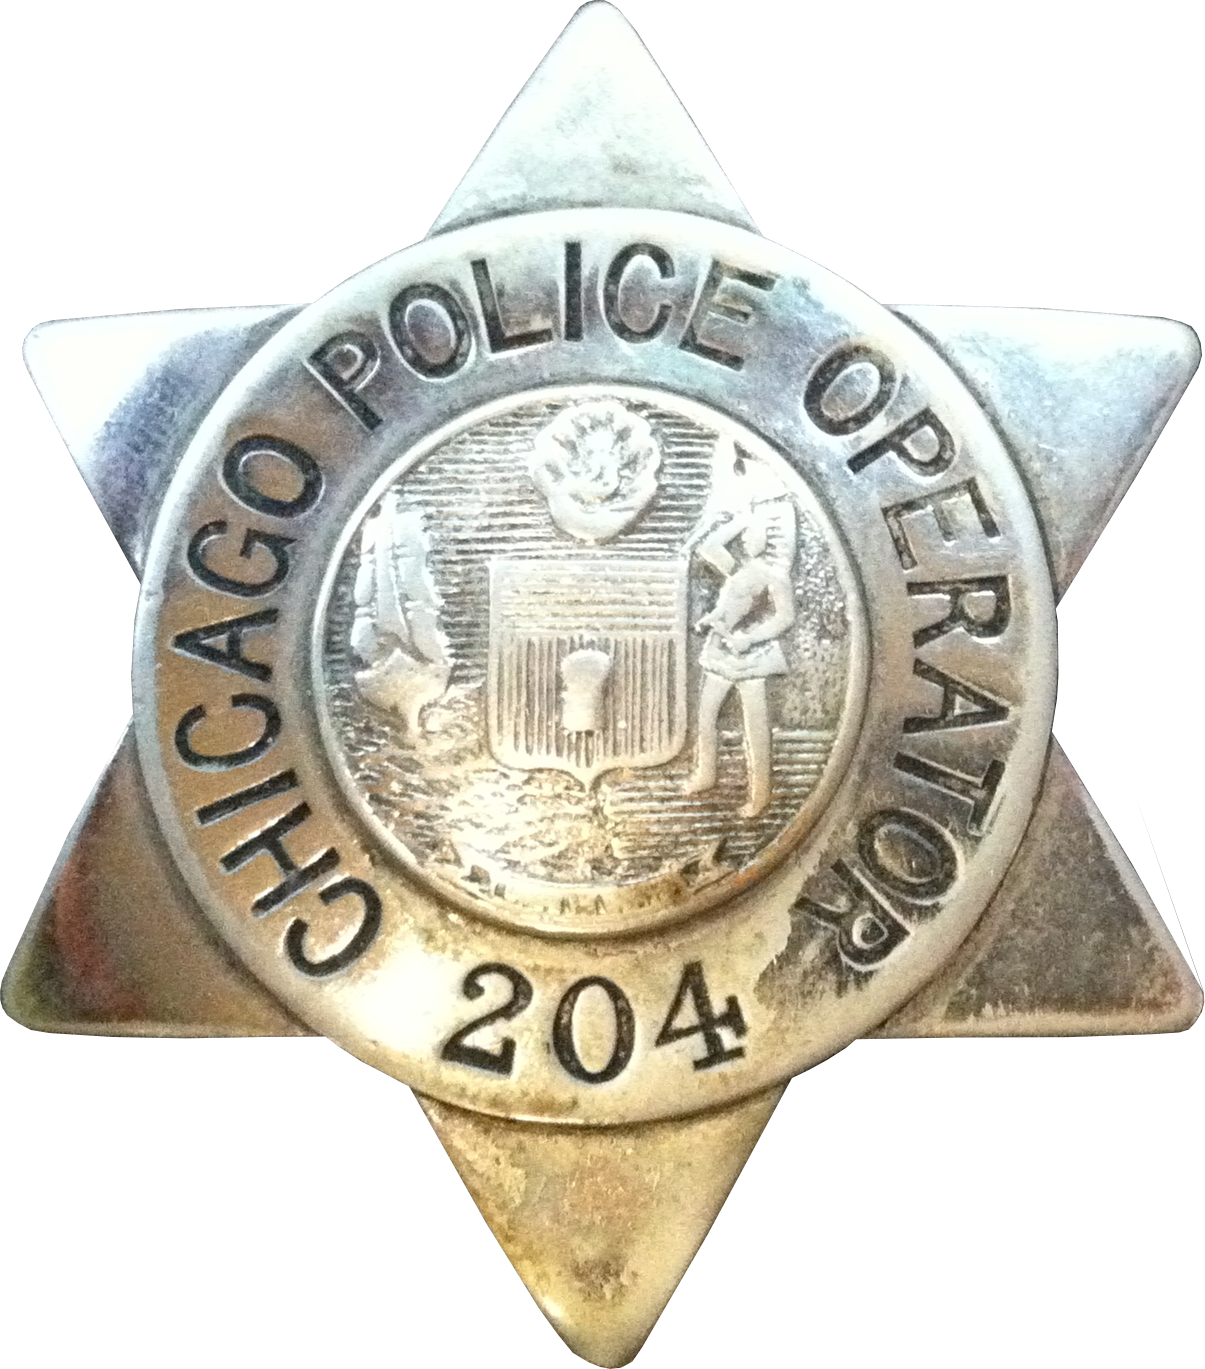 1905 Series - Chicago Police Operator Star - New Seal Obverse